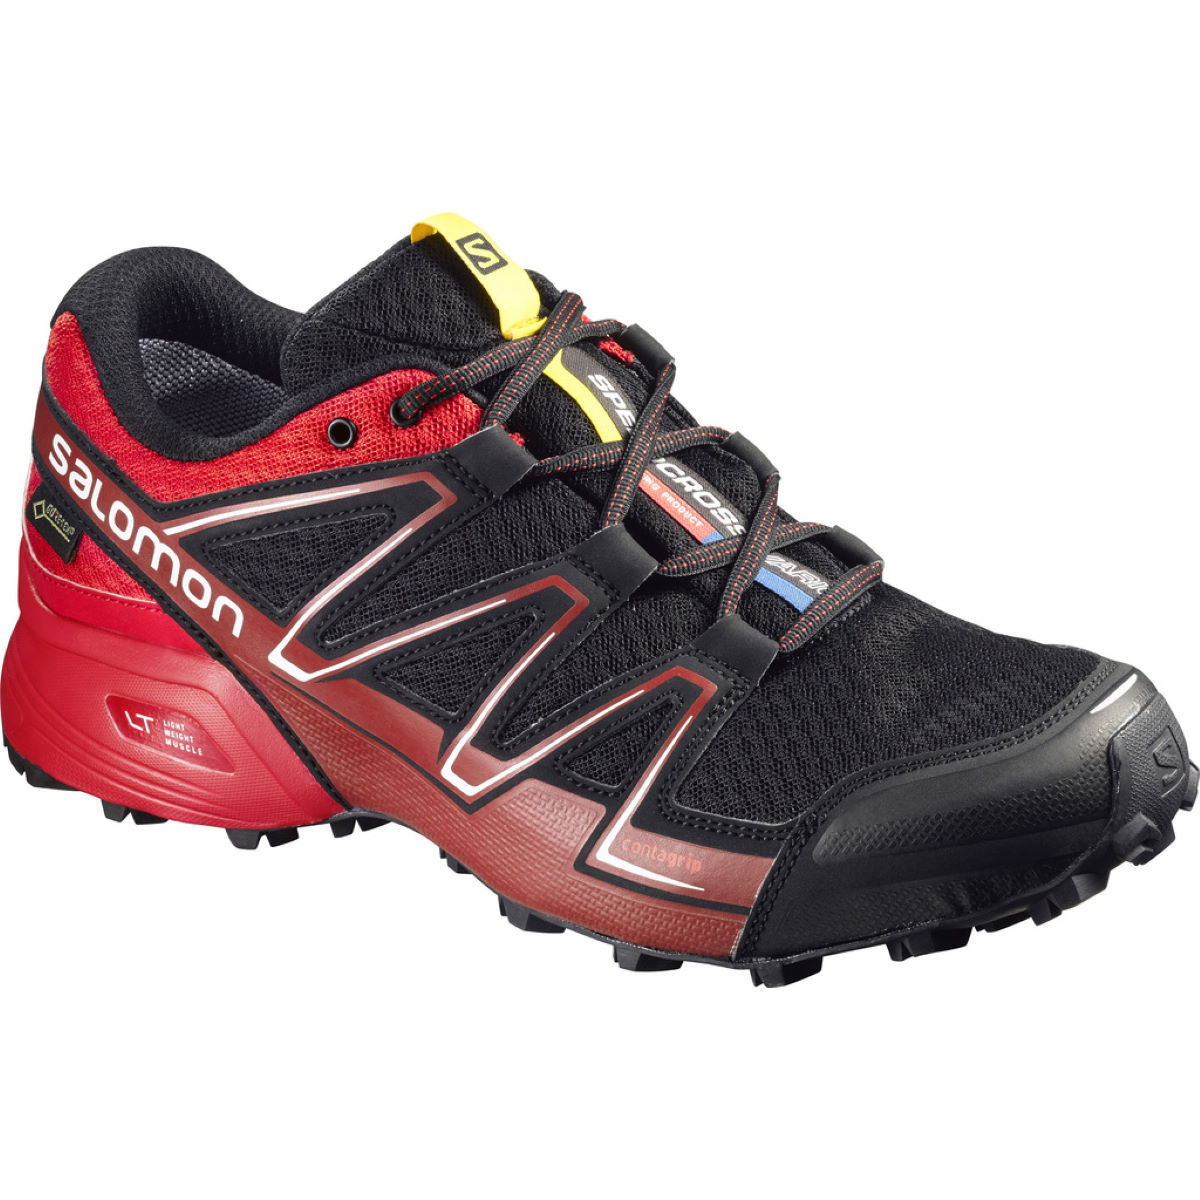 Salomon Speedcross Vario GTX Shoes - UK 10 Black/Radiant Red/br Chaussures de running trail